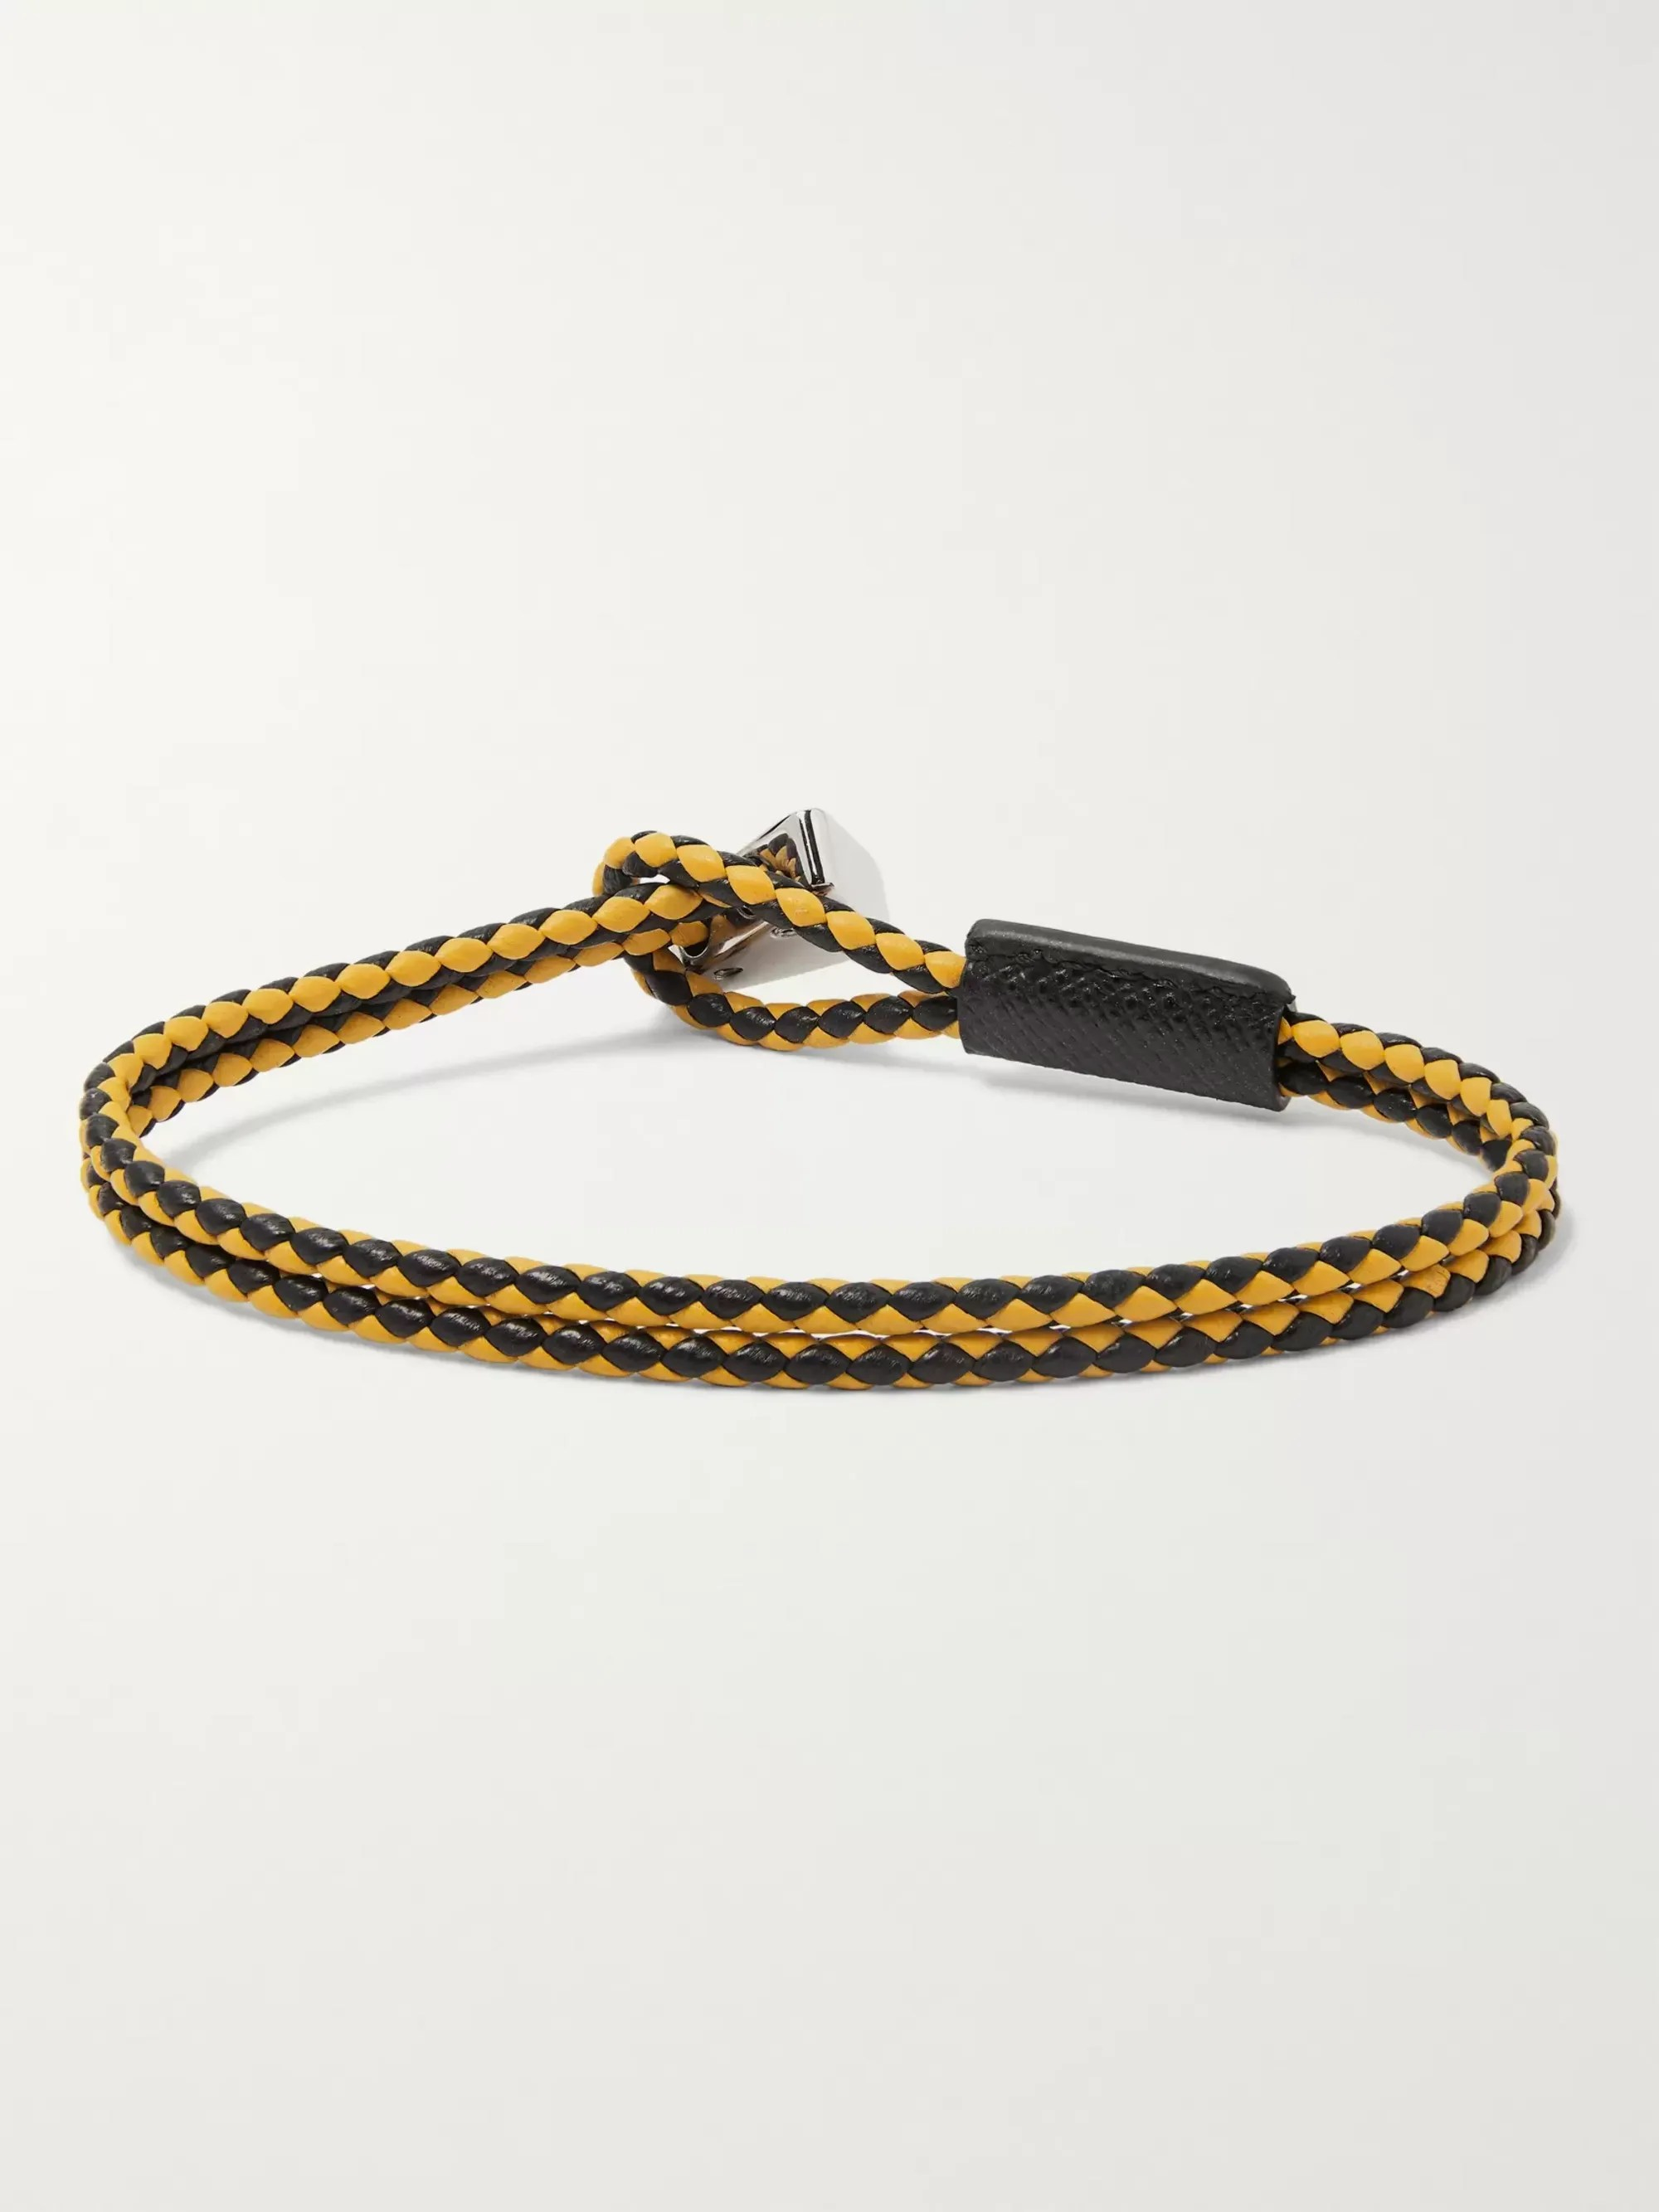 Le Meilleur Yellow Woven Leather Bracelet Prada Mr Porter Ce Mois Ci